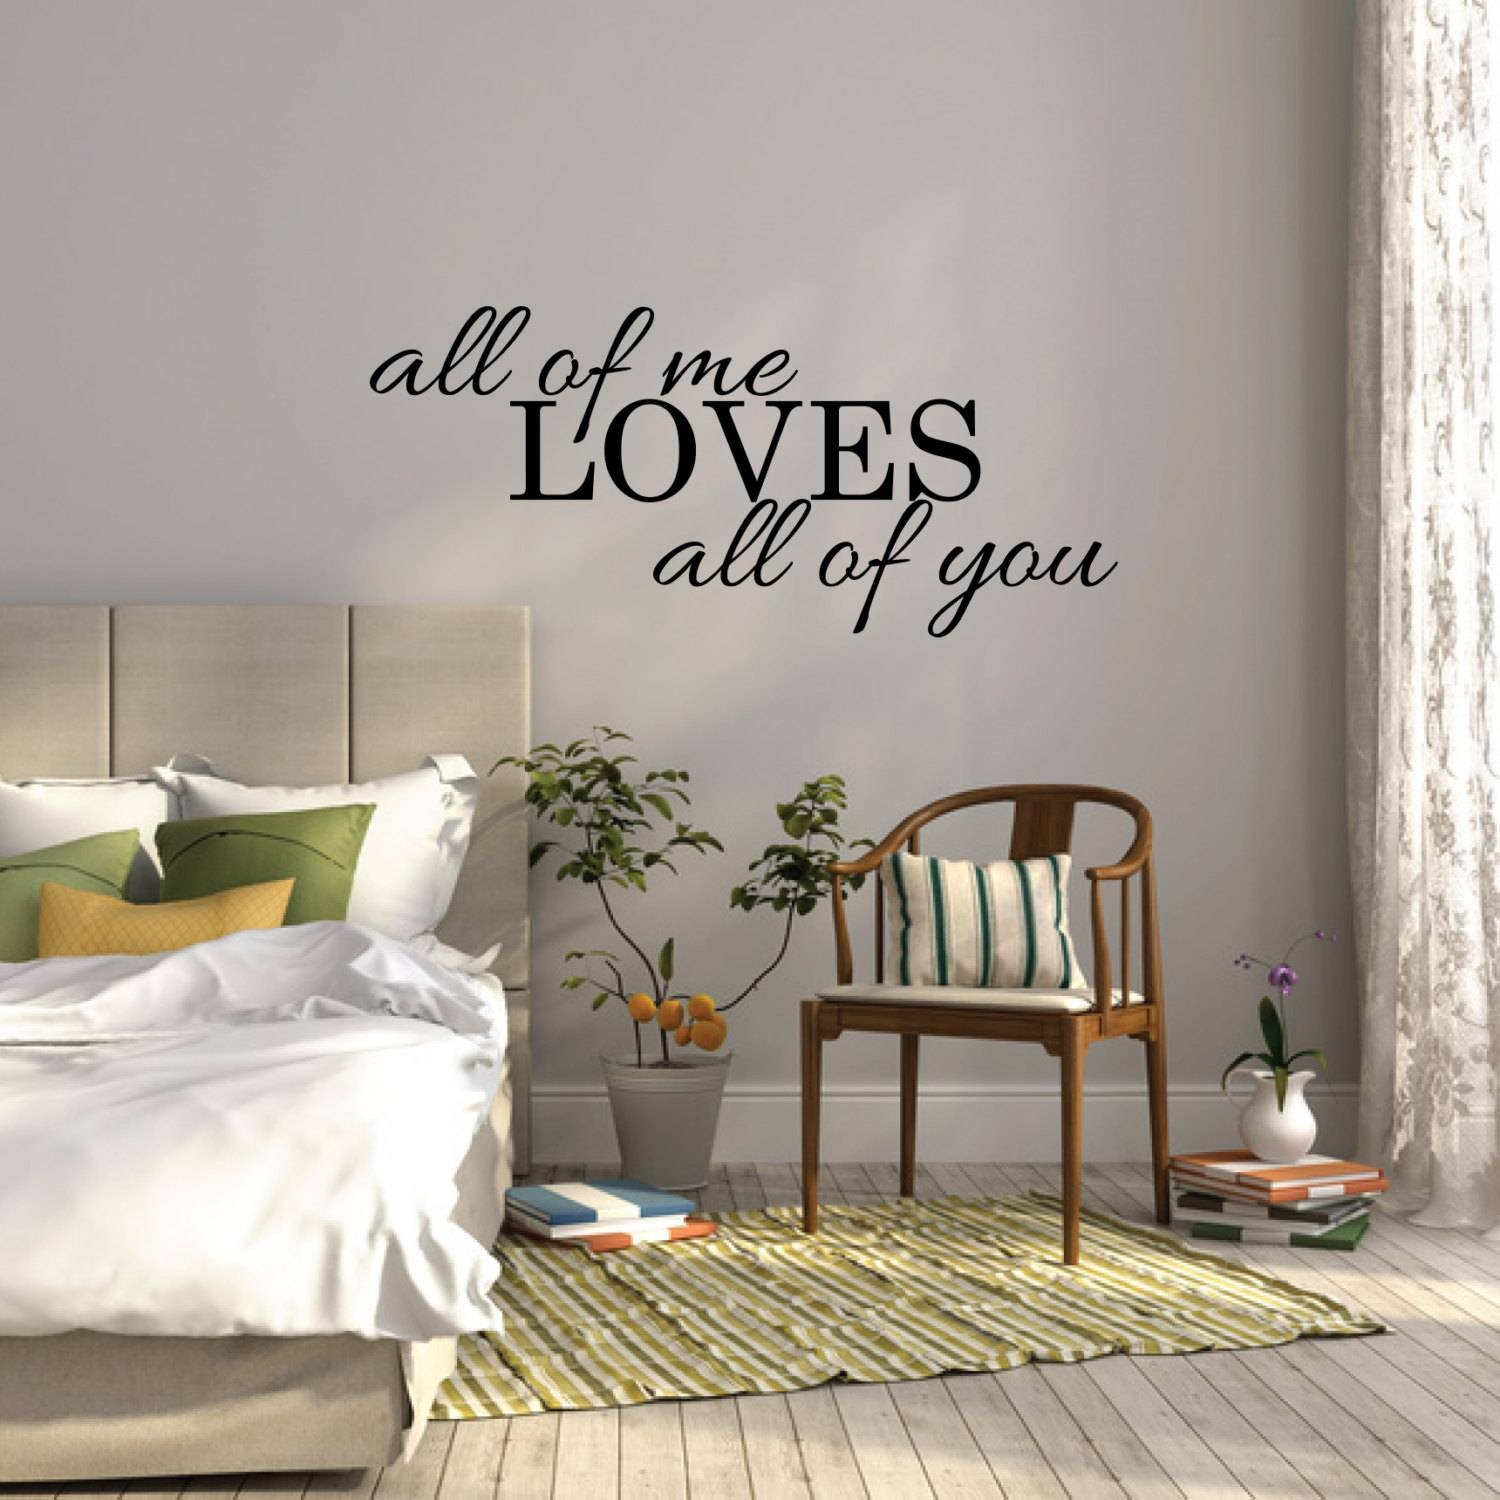 All Of Me Loves All Of You Wall Sticker Bedroom Wall Decal With Regard To 2018 Over The Bed Wall Art (View 2 of 20)